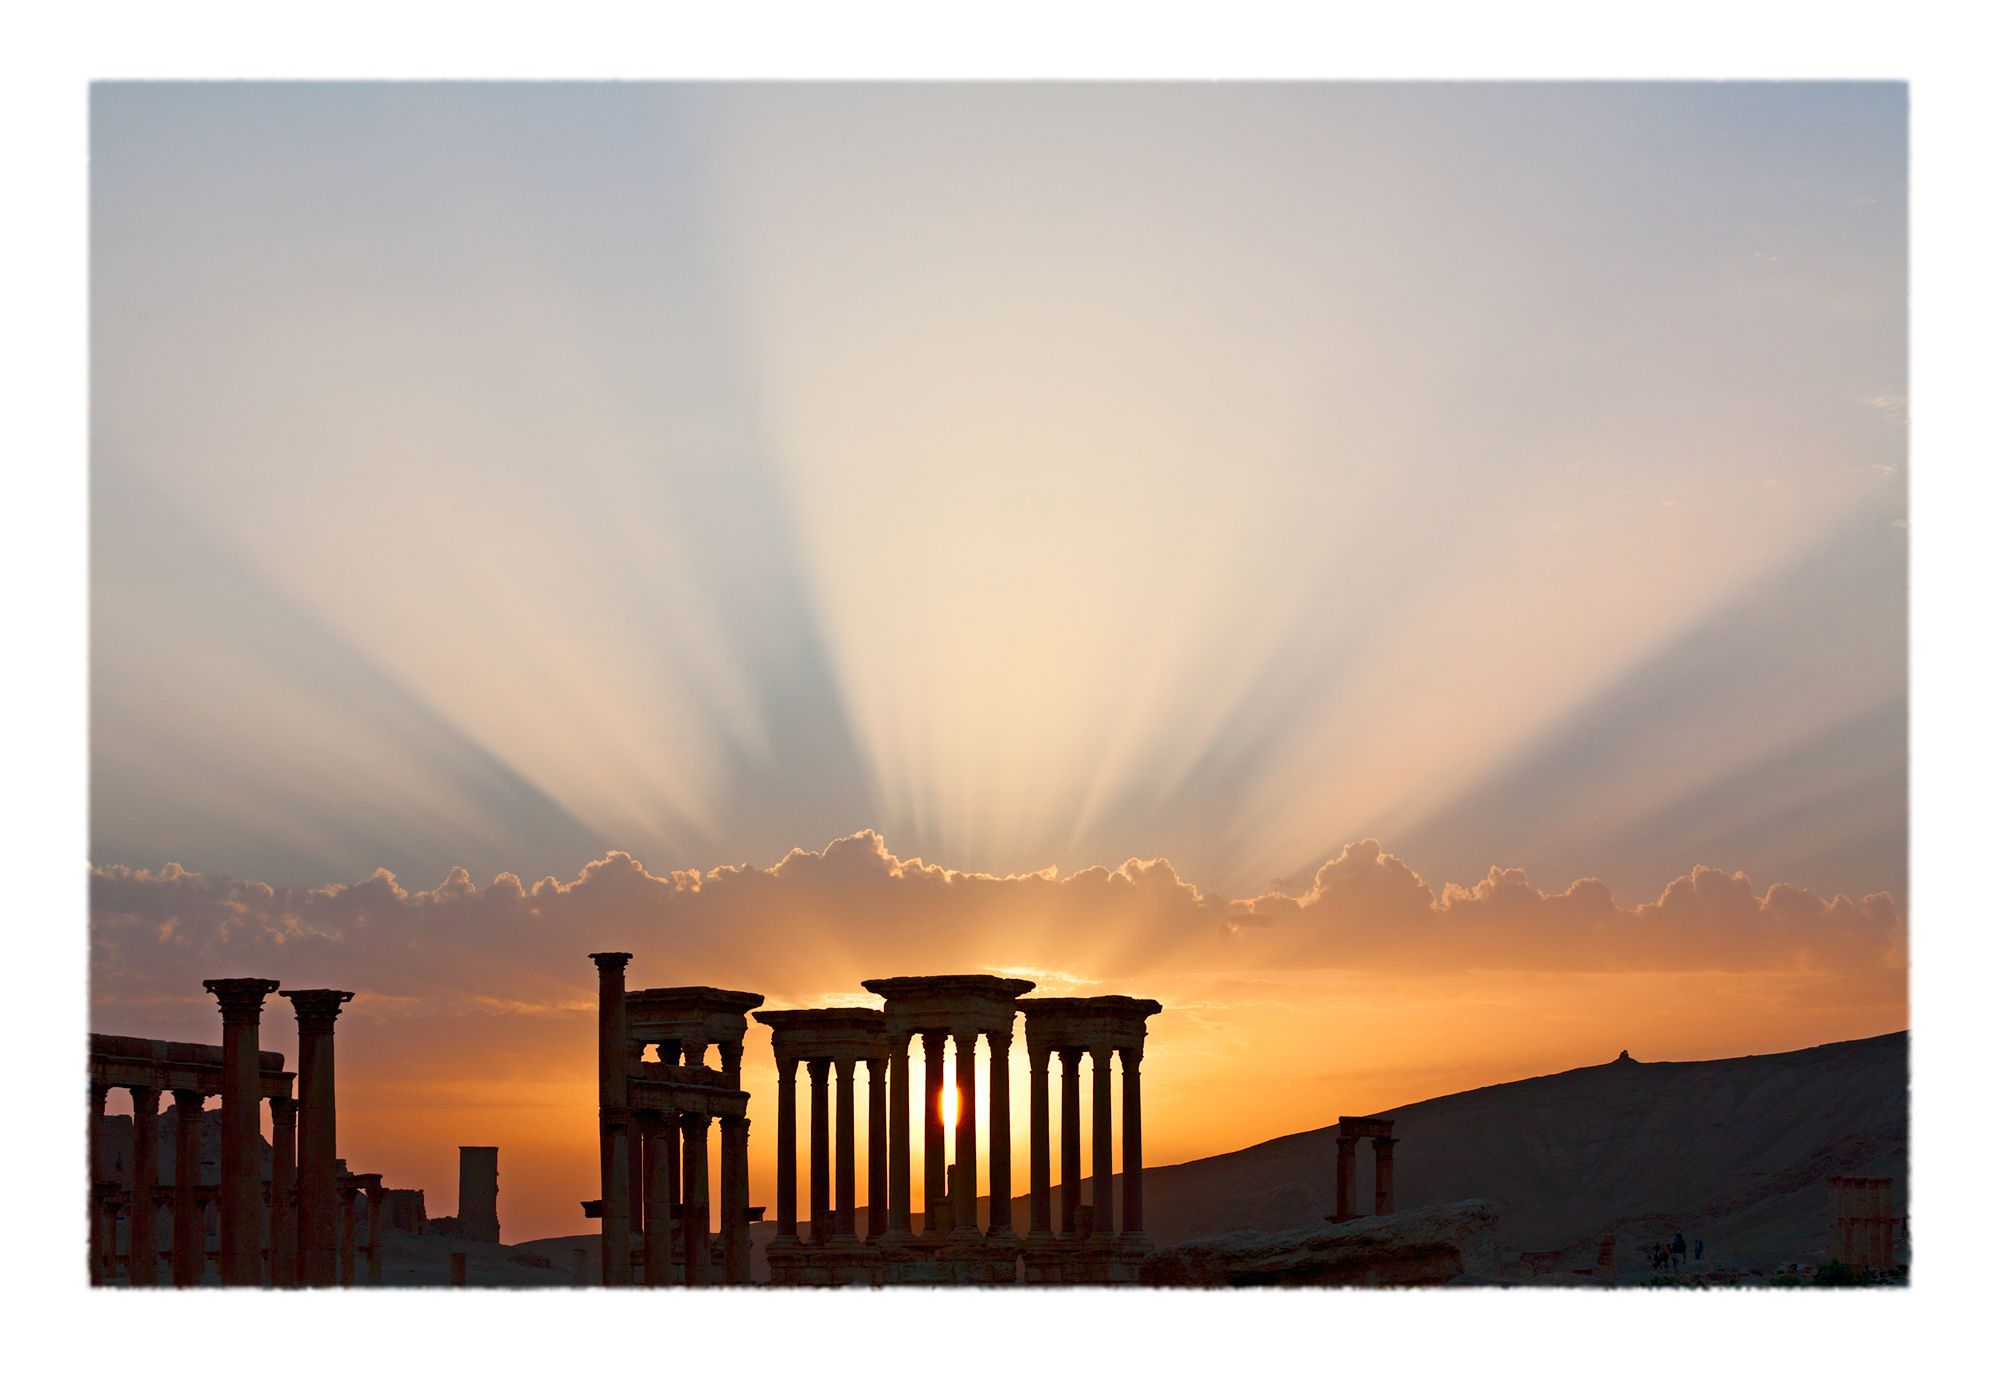 Radial spokes of sunset light over the Roman-era archaeological ruins of Palmyra, Syria